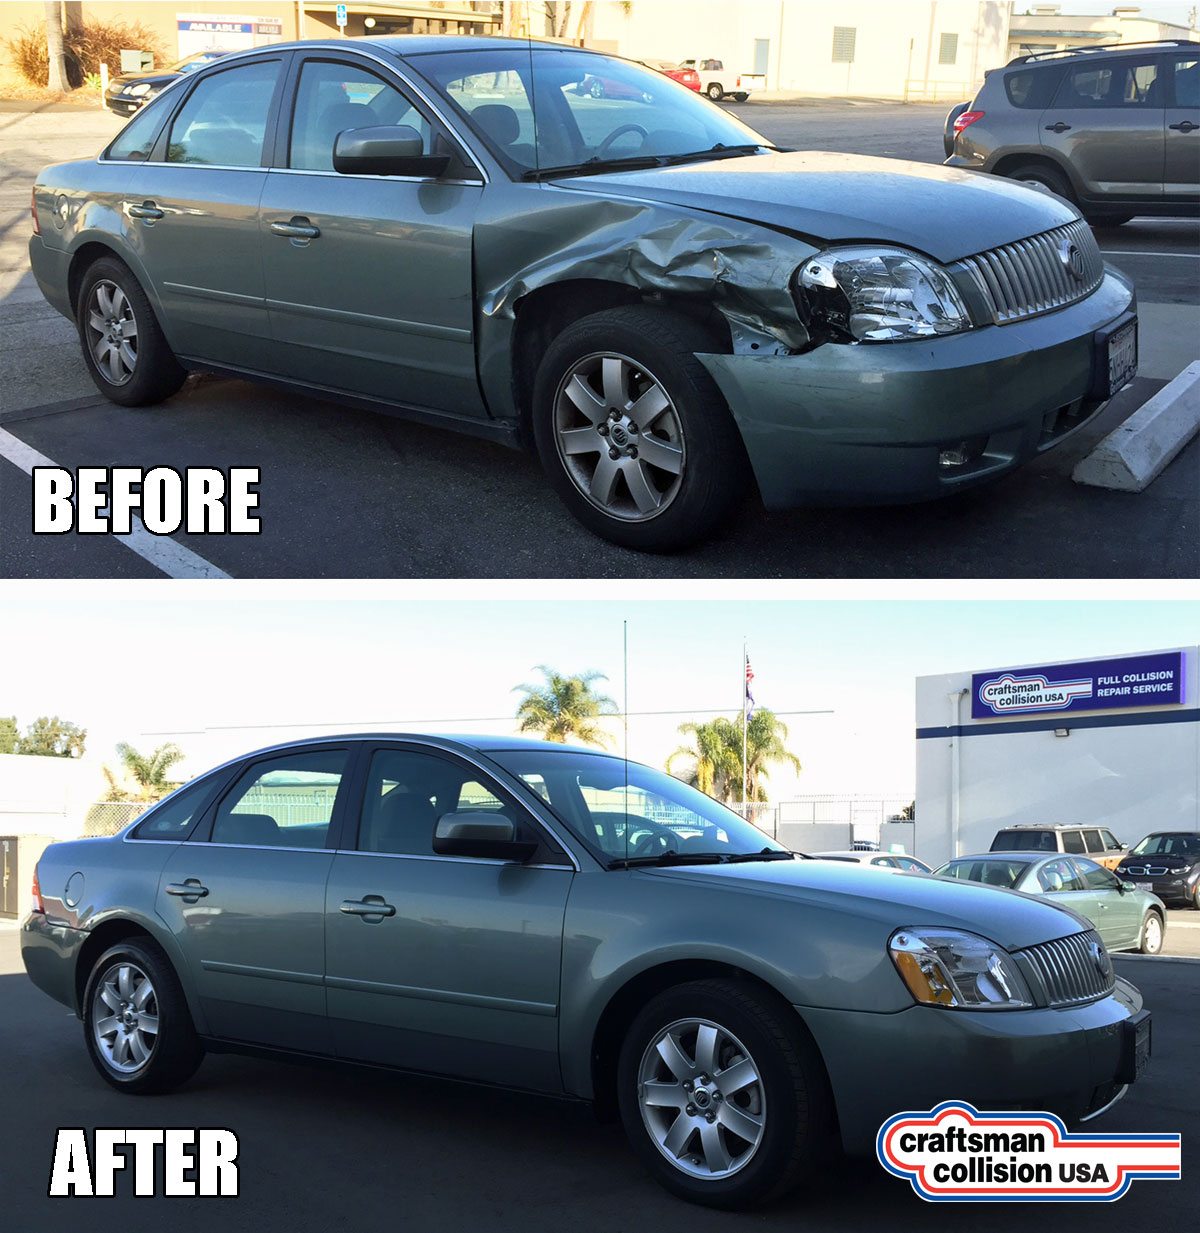 2006 Mercury collision repair